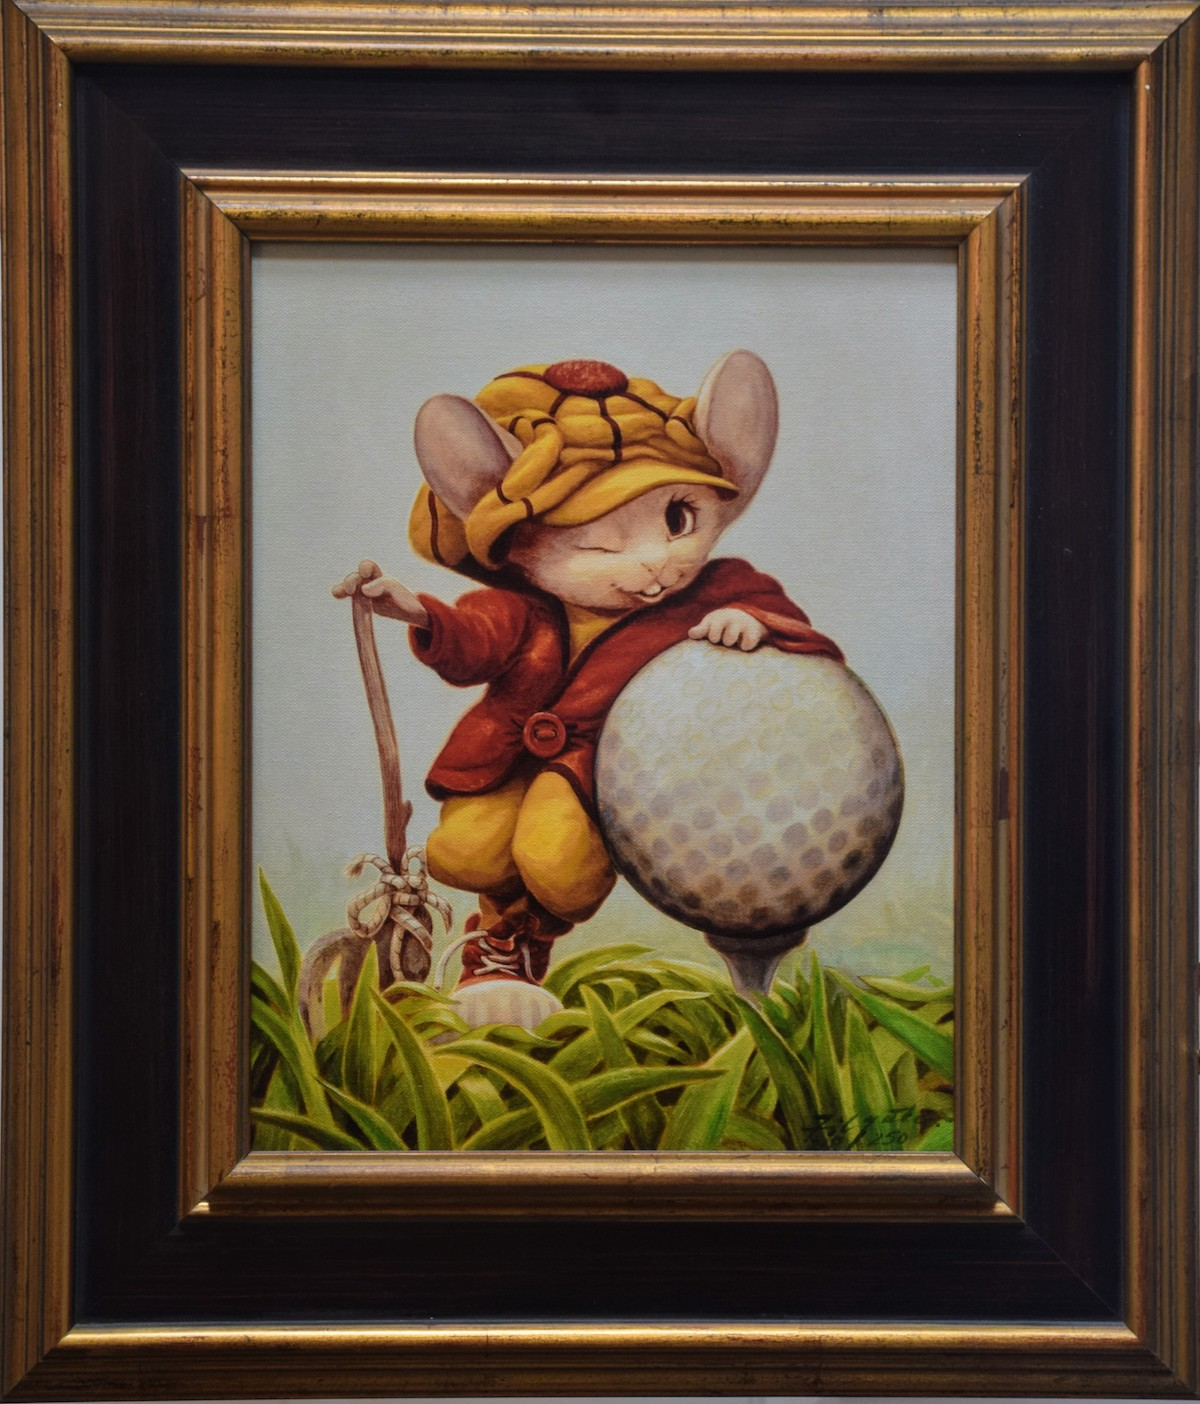 The Golfer (framed)